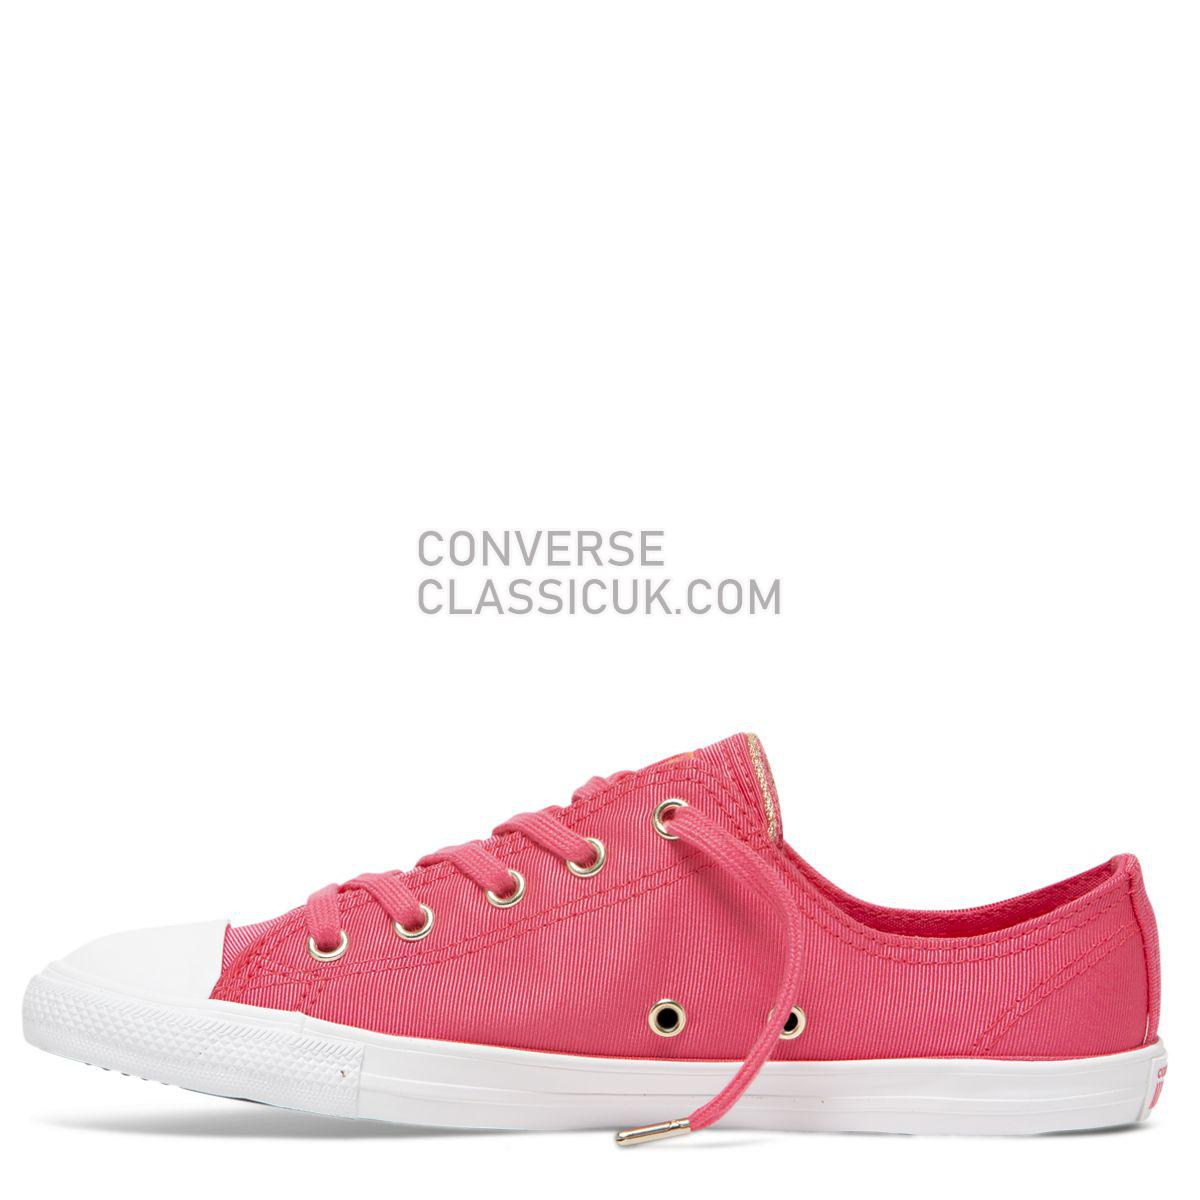 Converse Chuck Taylor All Star Dainty Summer Palms Low Top Strawberry Jam Womens 564306 Strawberry Jam/Turf Orange/Light Gold Shoes